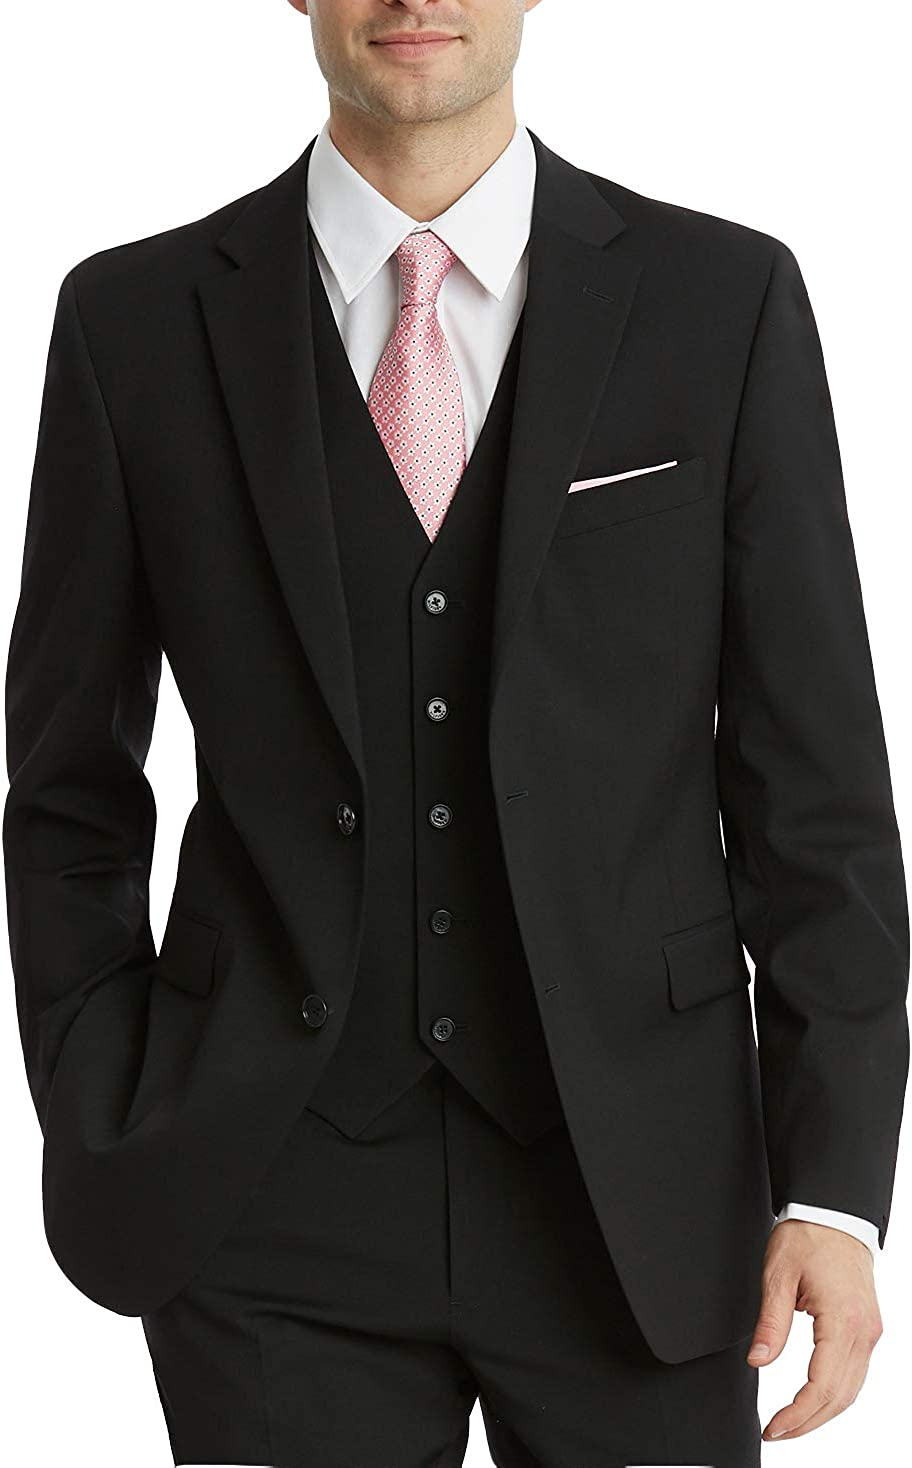 Statement Men's Modern Fit Single Breasted 3-Piece Wool Suit Set - Colors